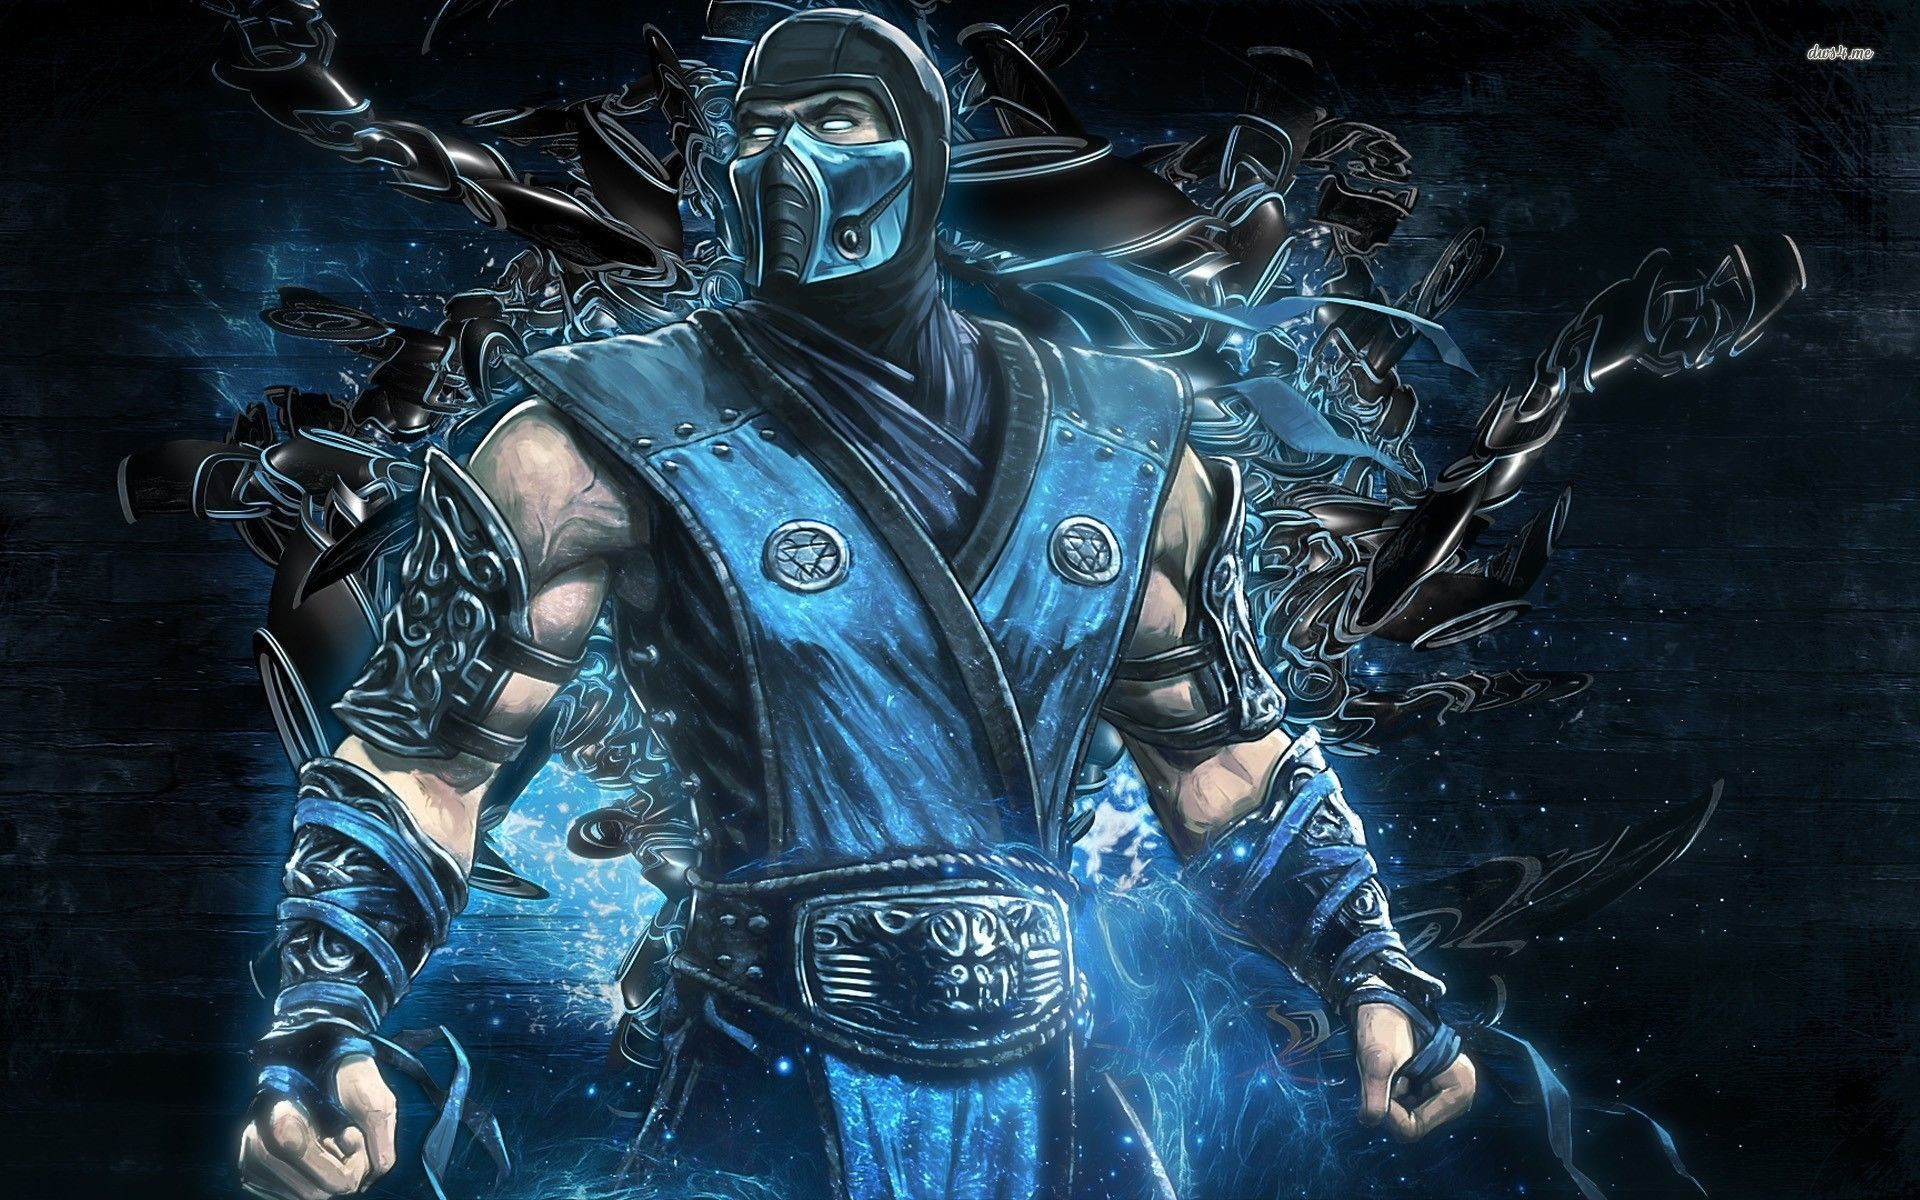 Mortal Kombat Wallpaper For Computer